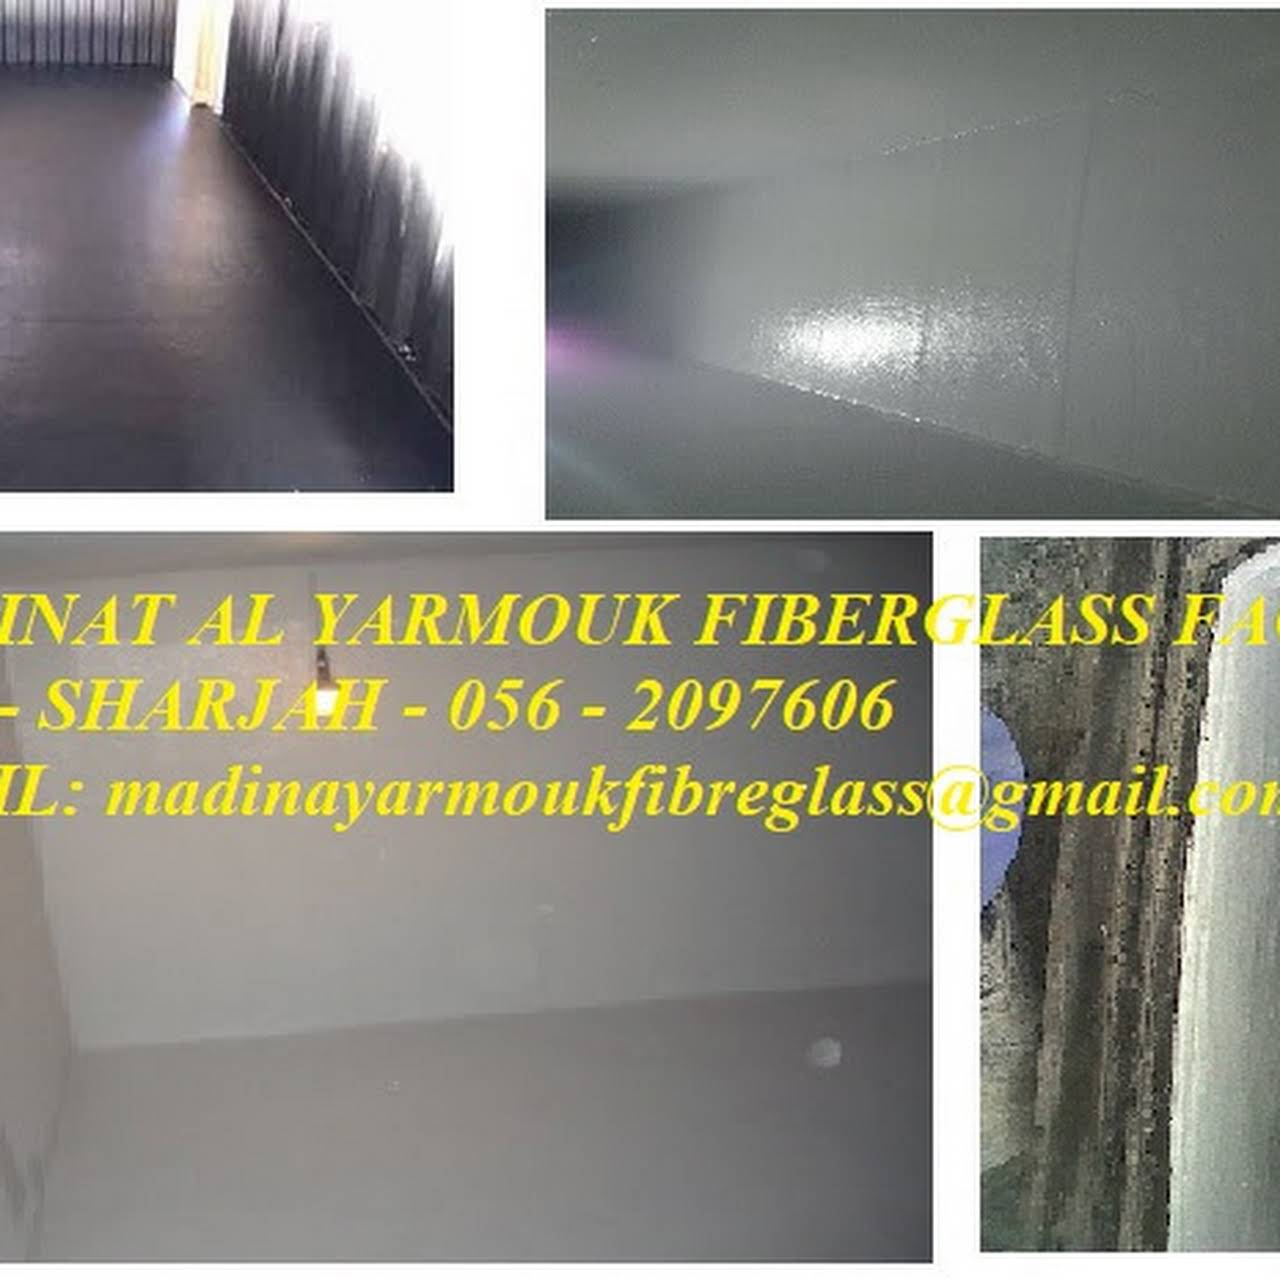 Madinat Al Yarmouk Fibre Glass Factory LLC - Fiberglass